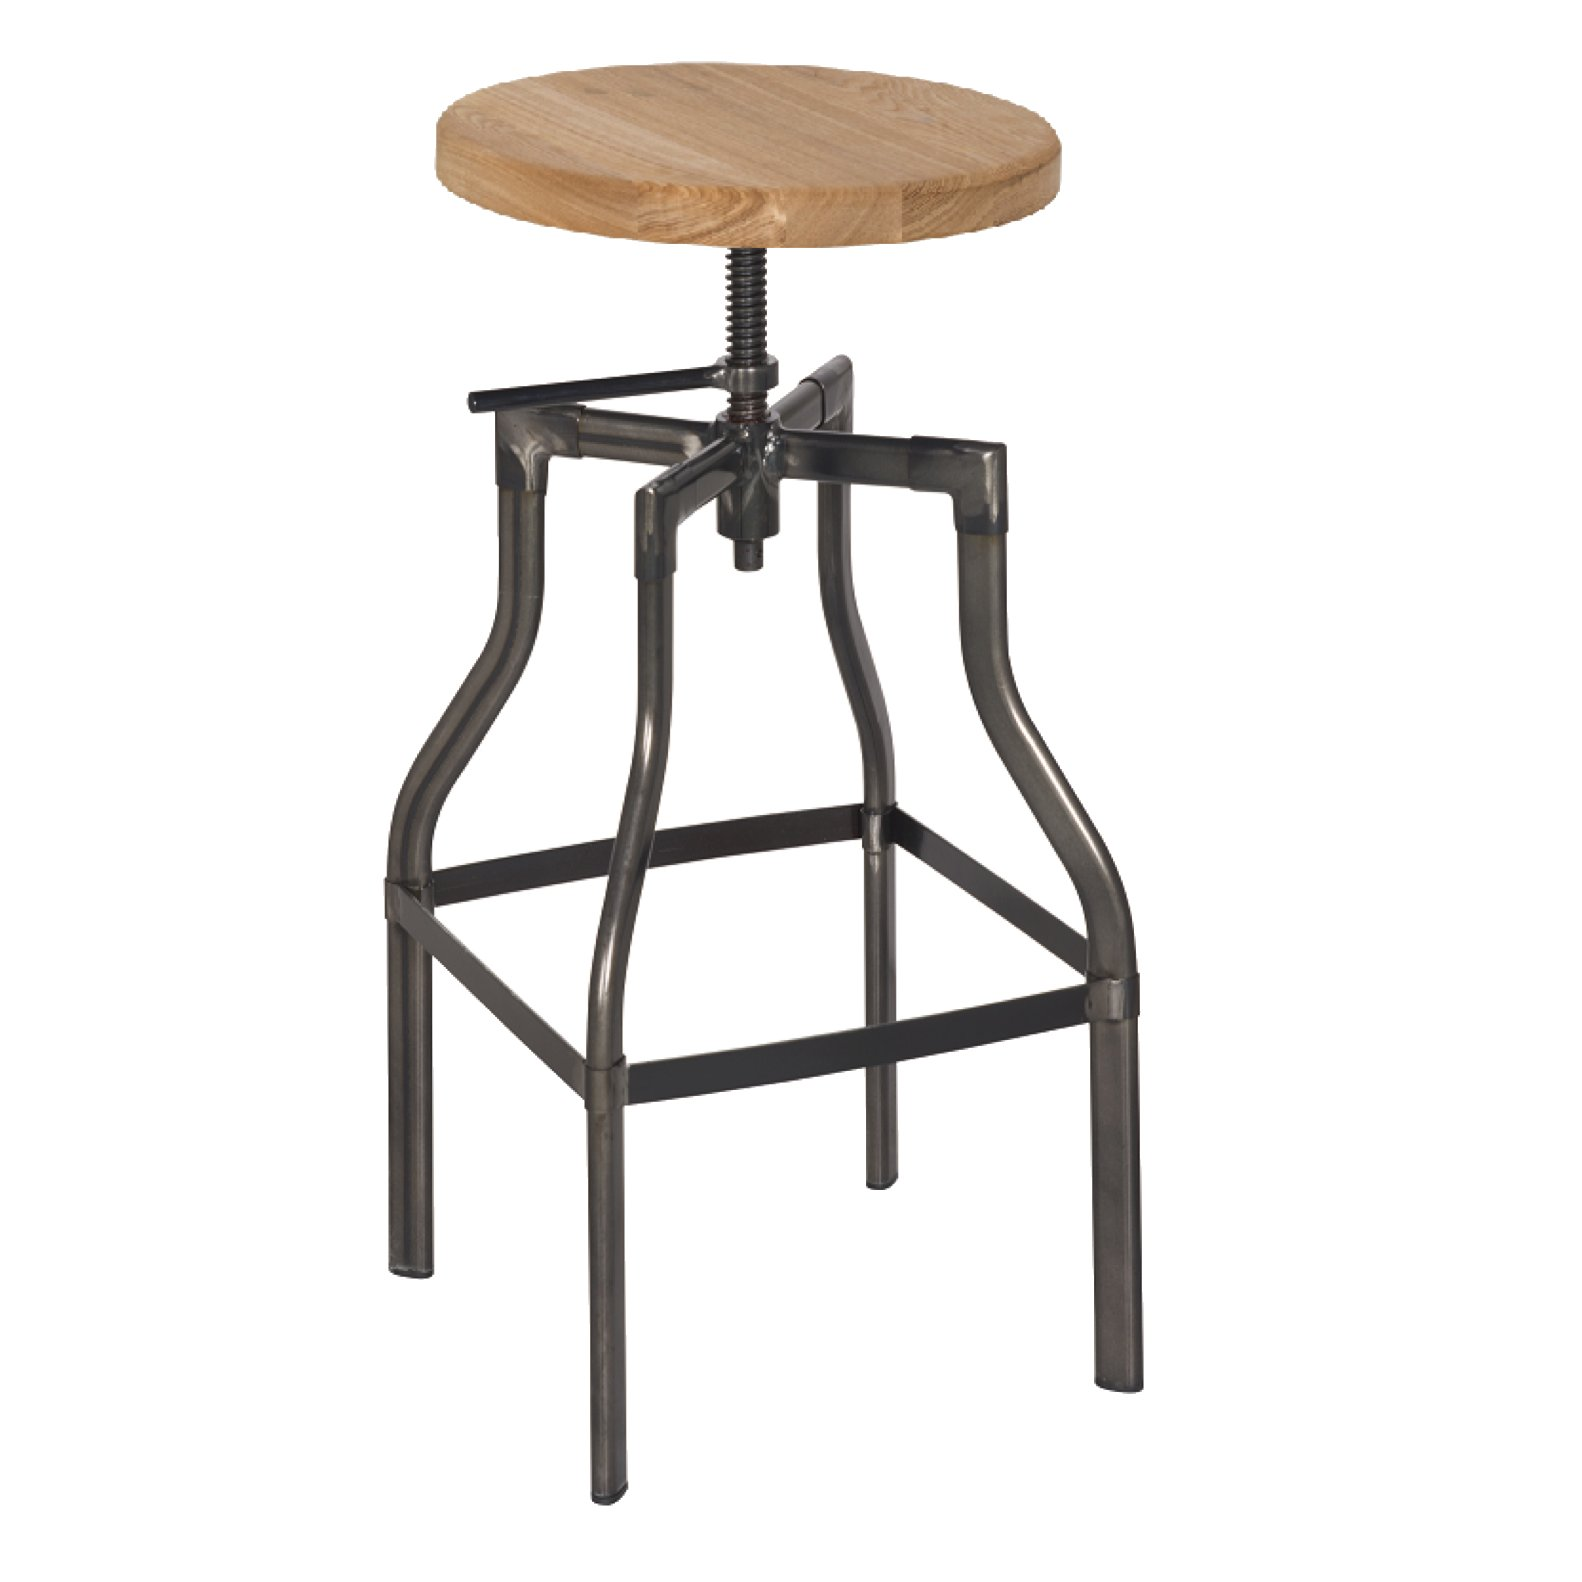 Very Impressive portraiture of industrial bar stool $ 119 00 gst colour black base light wood seat  with #8B6440 color and 1582x1582 pixels